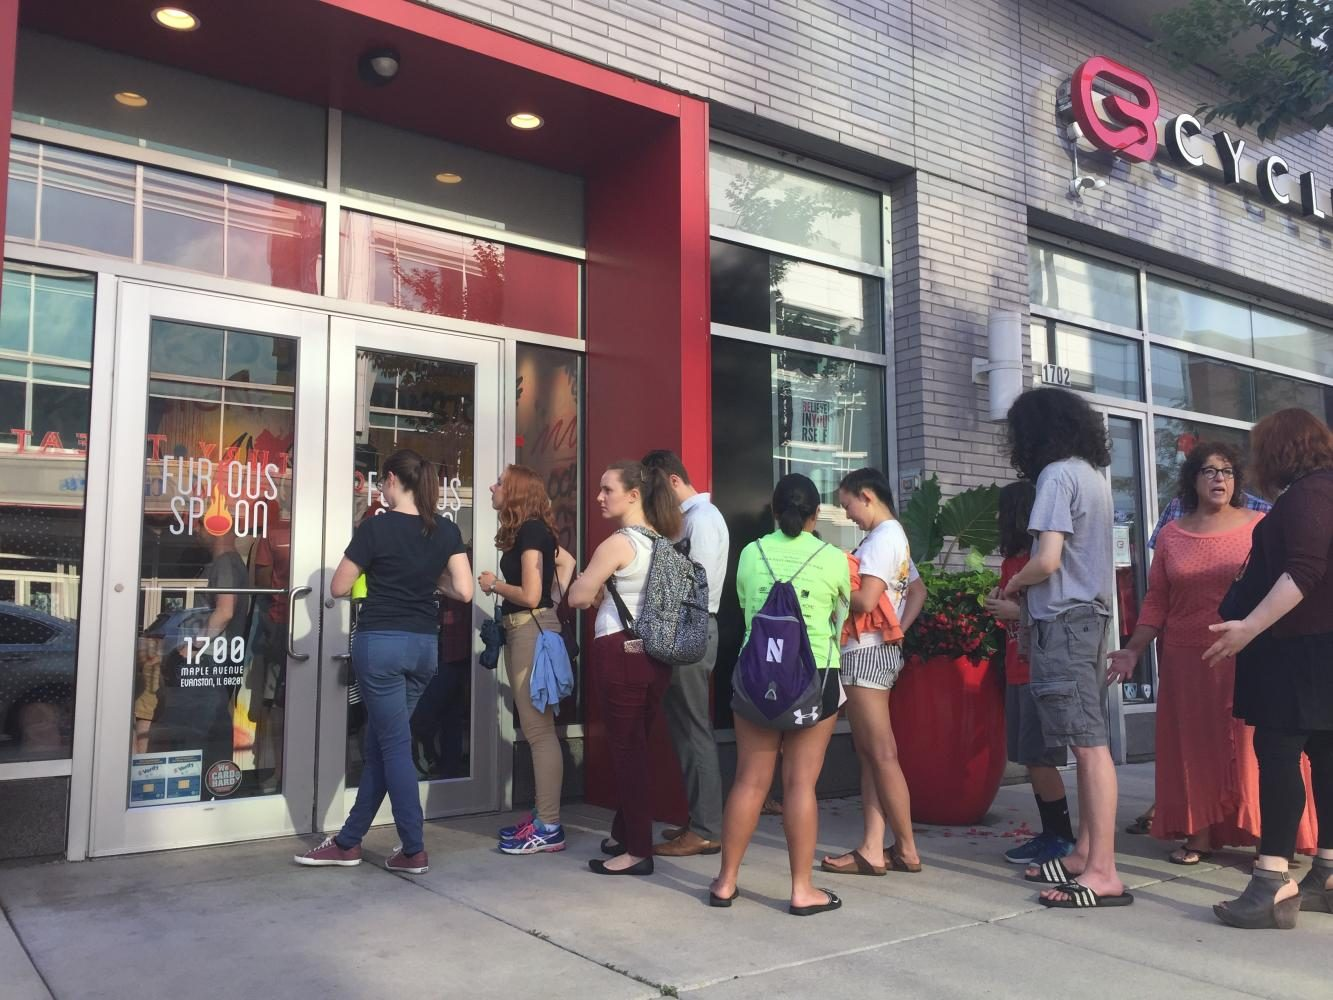 Customers+wait+outside+Furious+Spoon+for+its+Thursday+5+p.m.+grand+opening.+The+ramen+restaurant+is+located+at+Maple+Avenue+and+Church+Street+downtown.